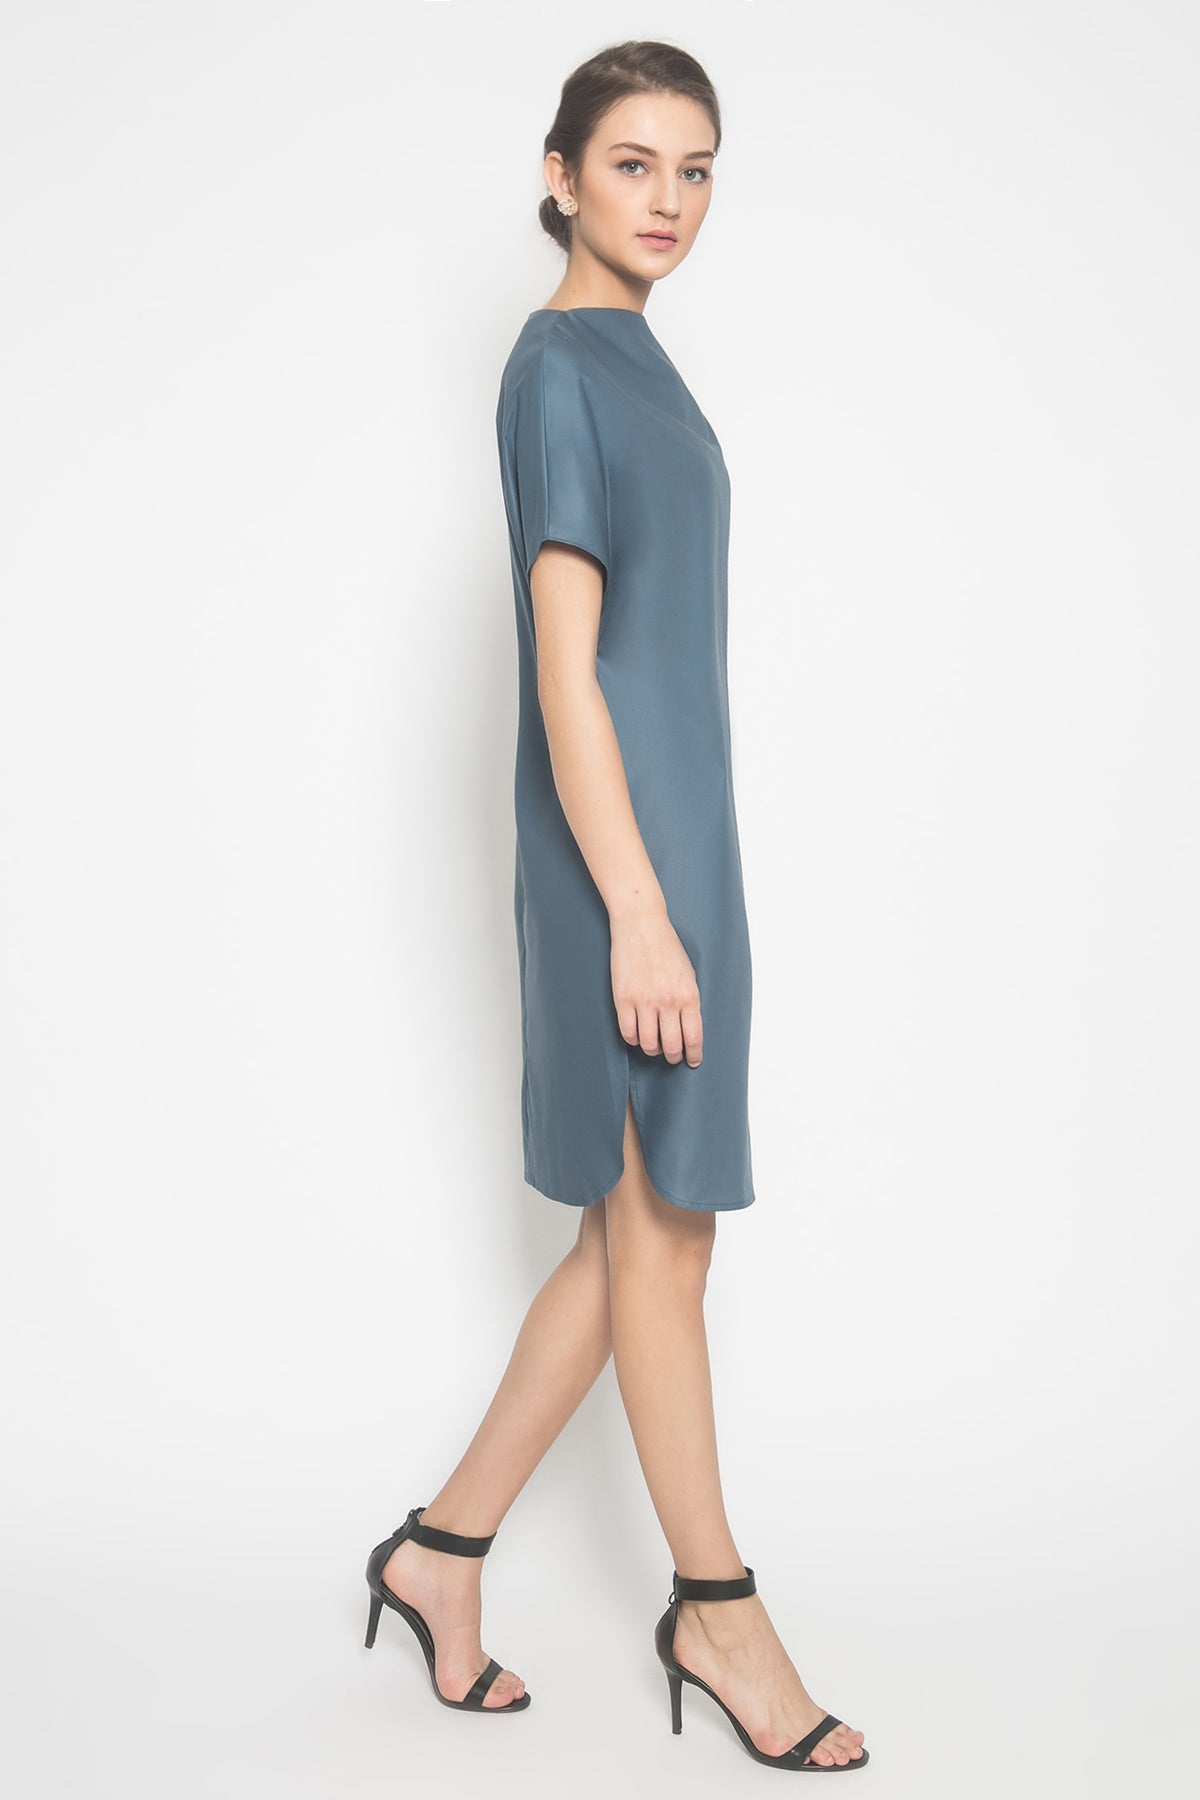 Haze Circle Cut Dress in Teal